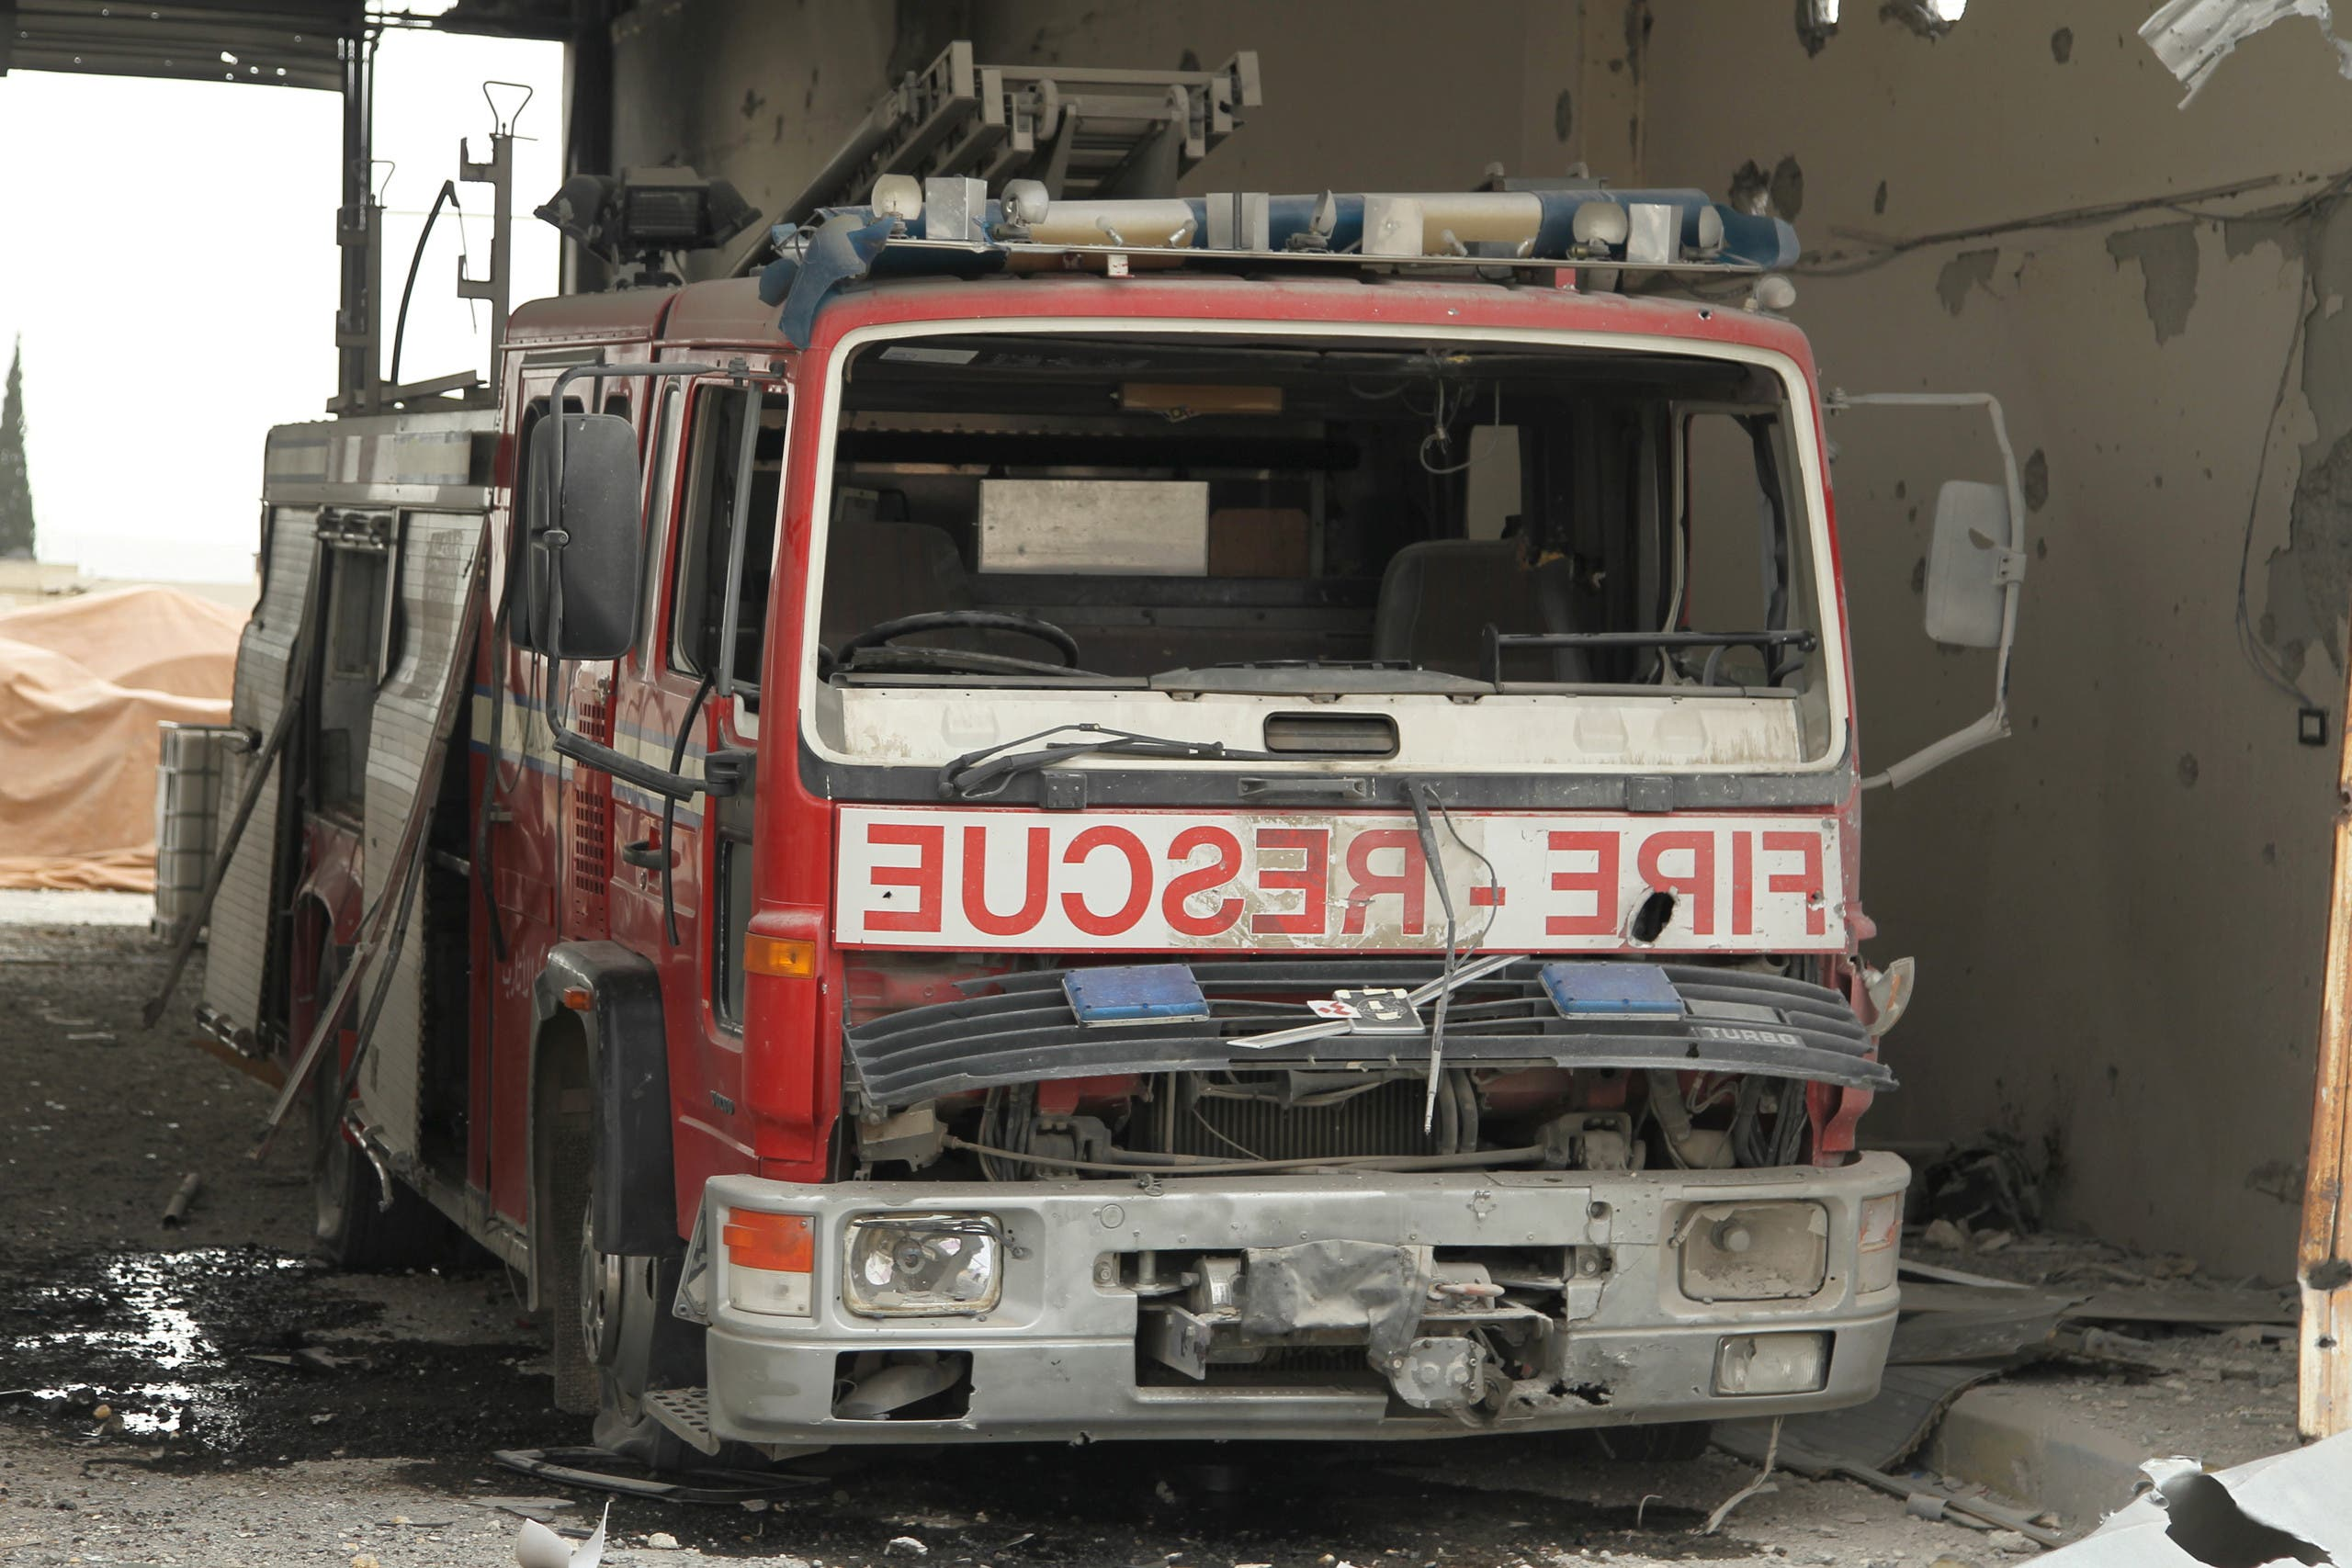 A damaged Civil Defence truck is pictured inside a rescue station in the rebel held town of Atareb, Aleppo countryside, Syria